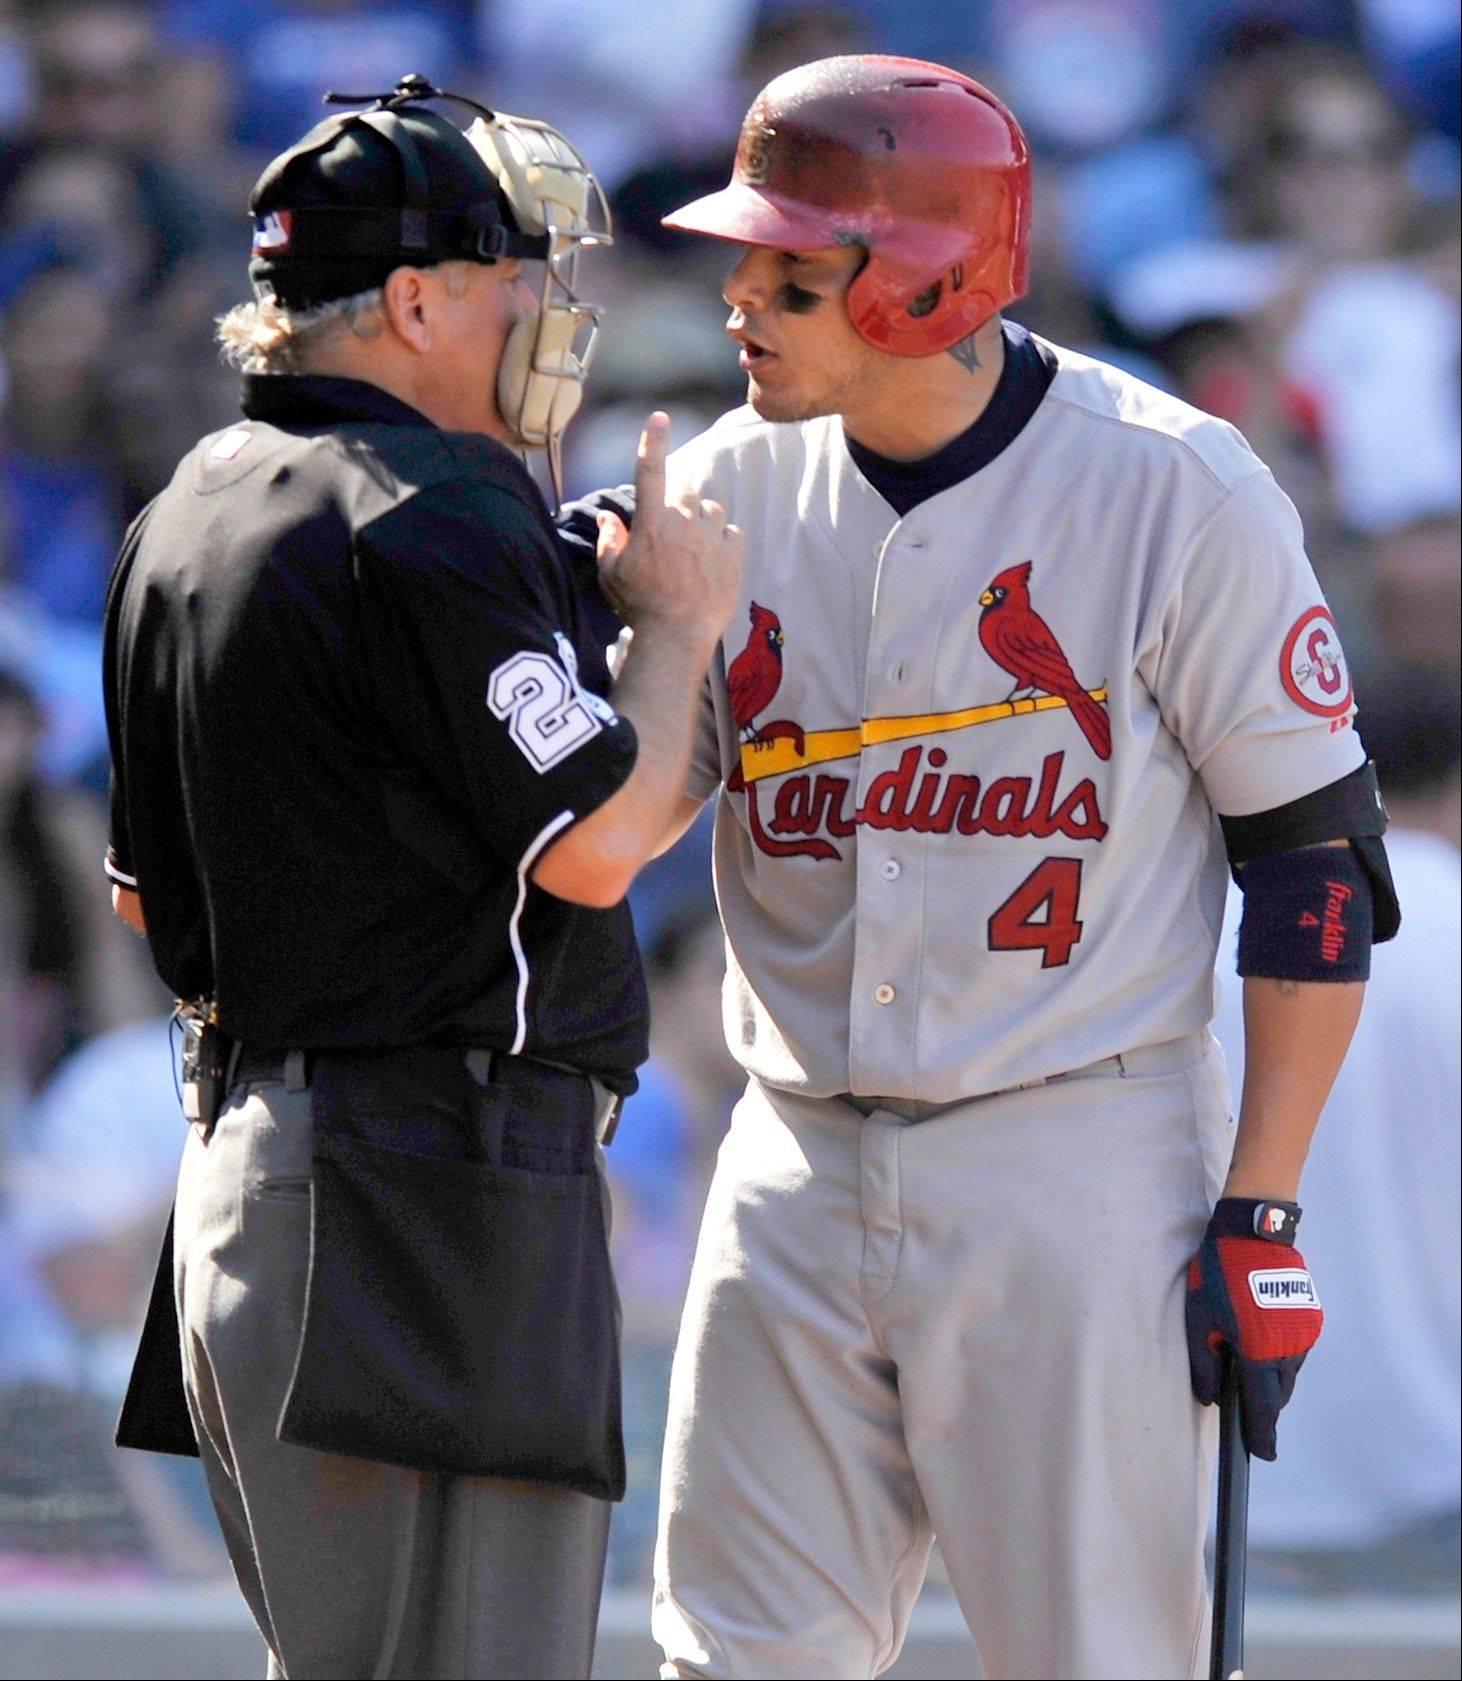 Cubs fans may disagree, but Cardinals catcher Yadier Molina is one of Len Kasper's favorite players who don't play for the Cubs.